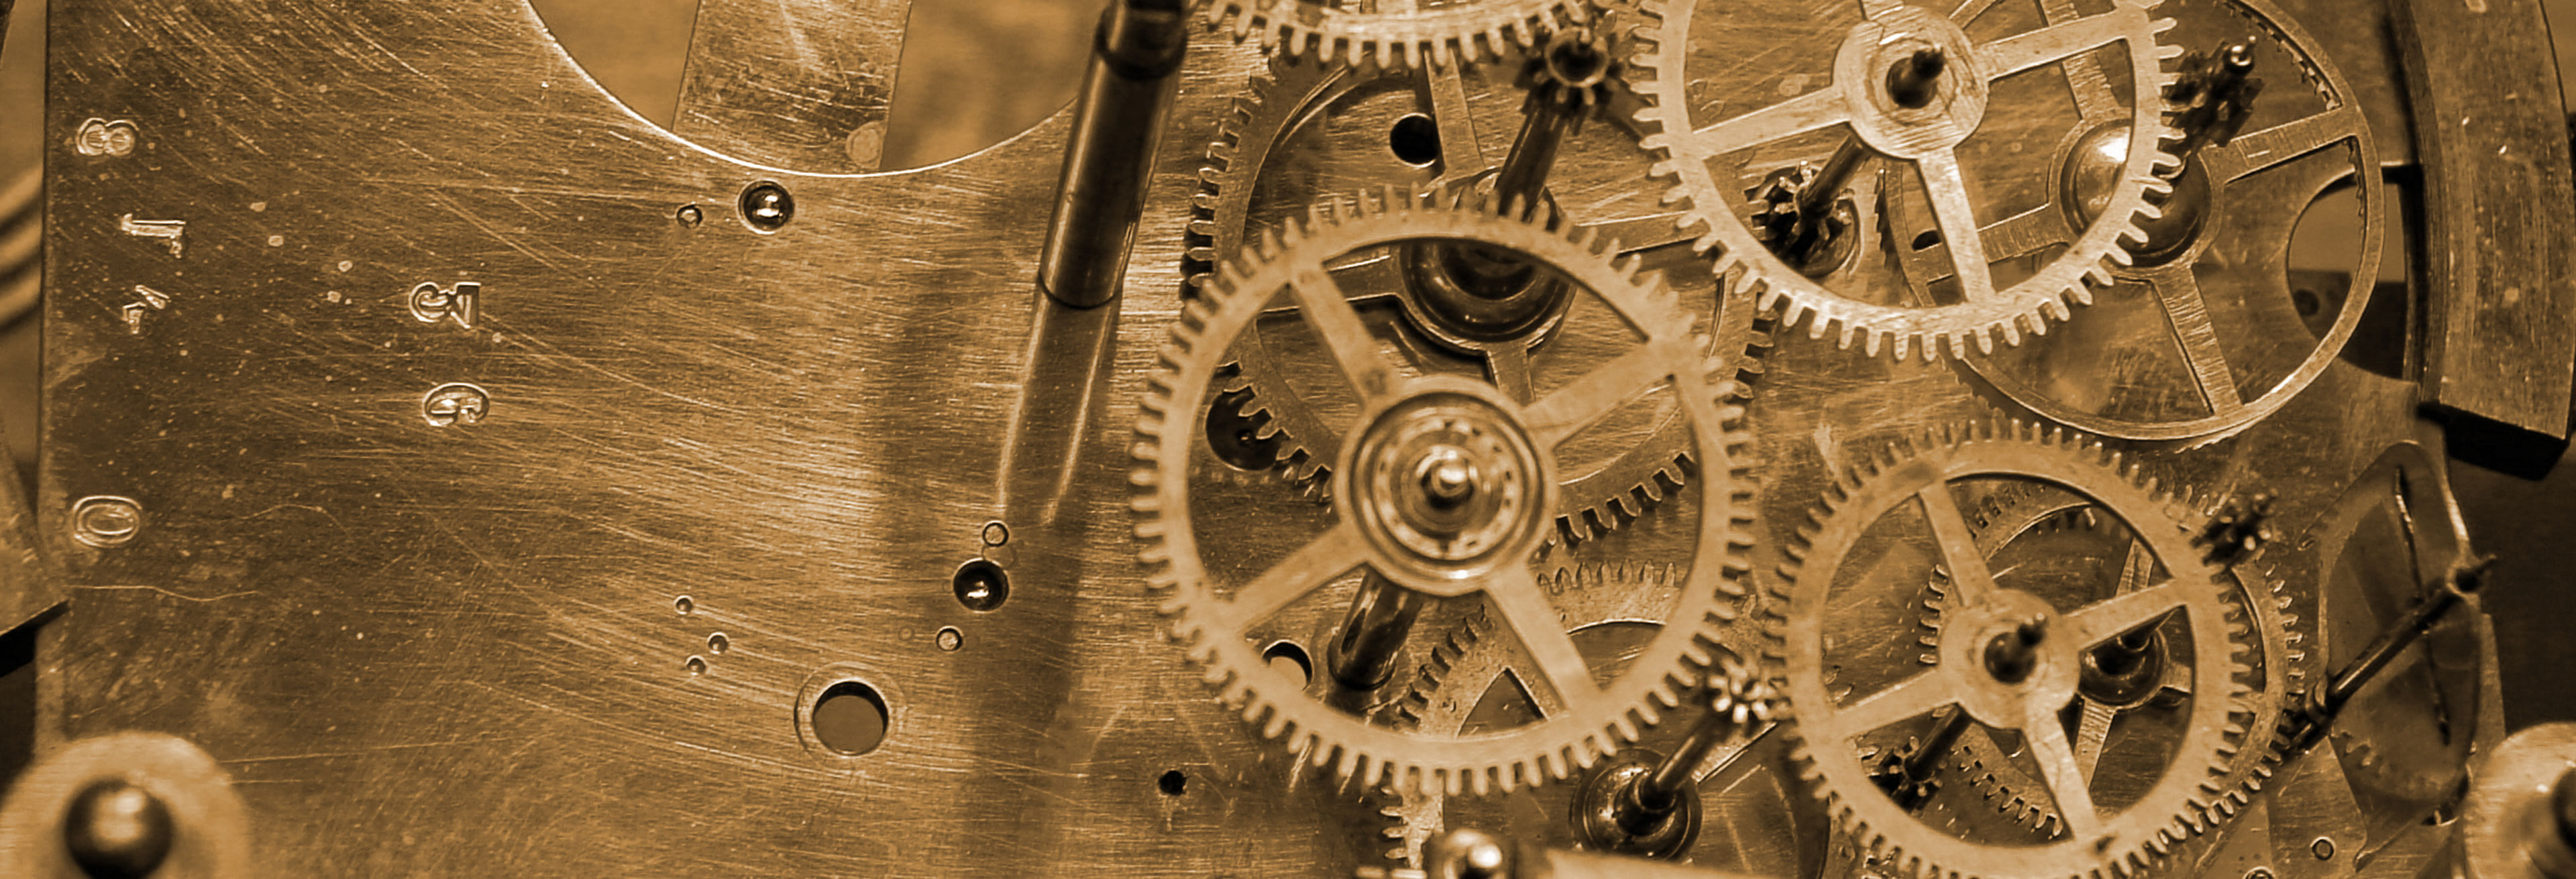 We specialize in repairing and restoring antique clocks and precision watches,